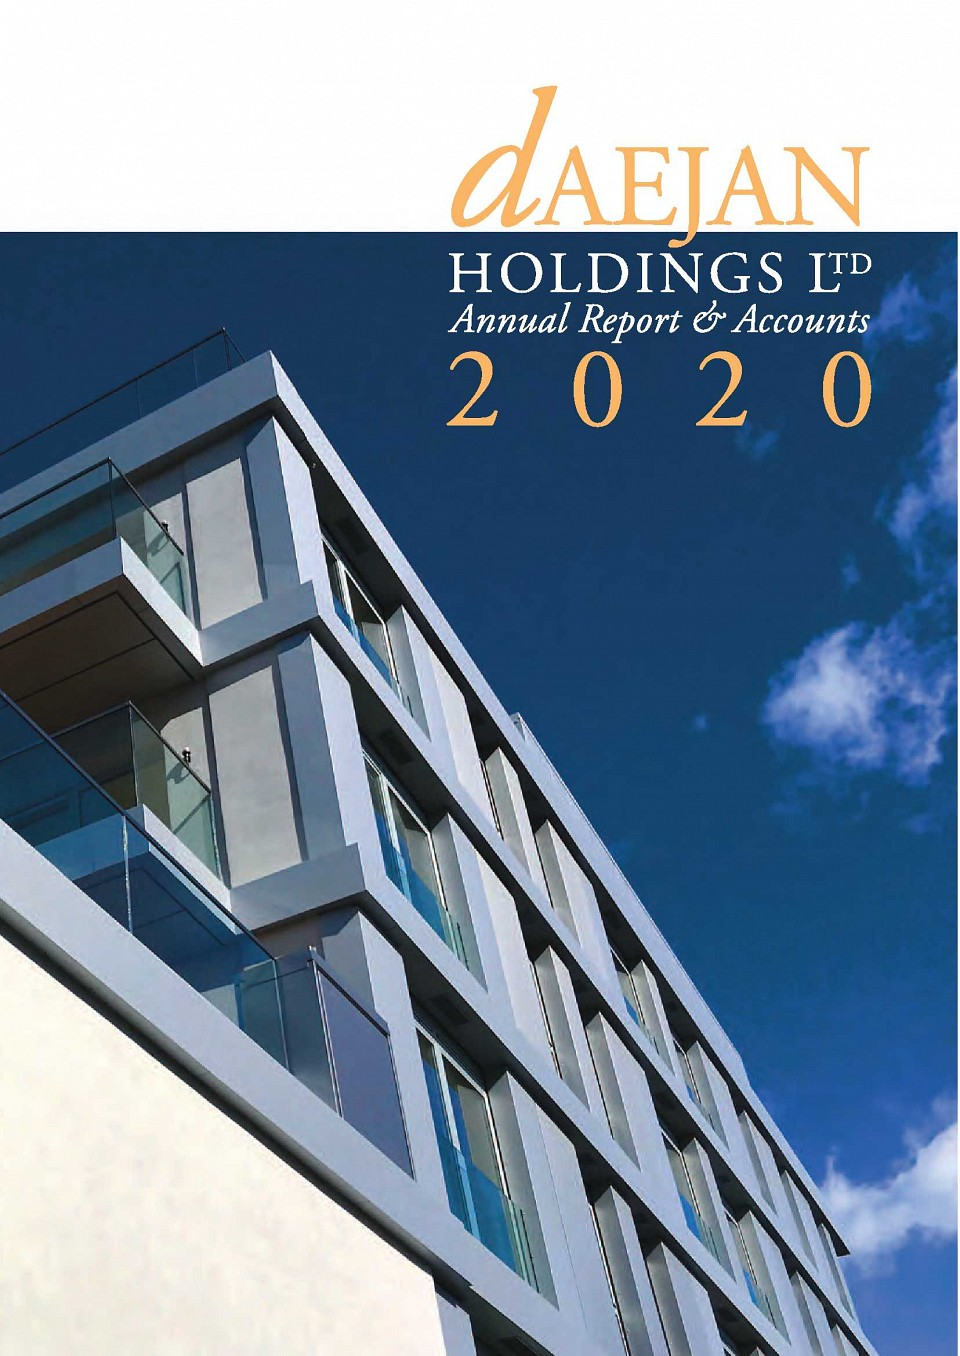 View our Annual Report & Accounts 2020